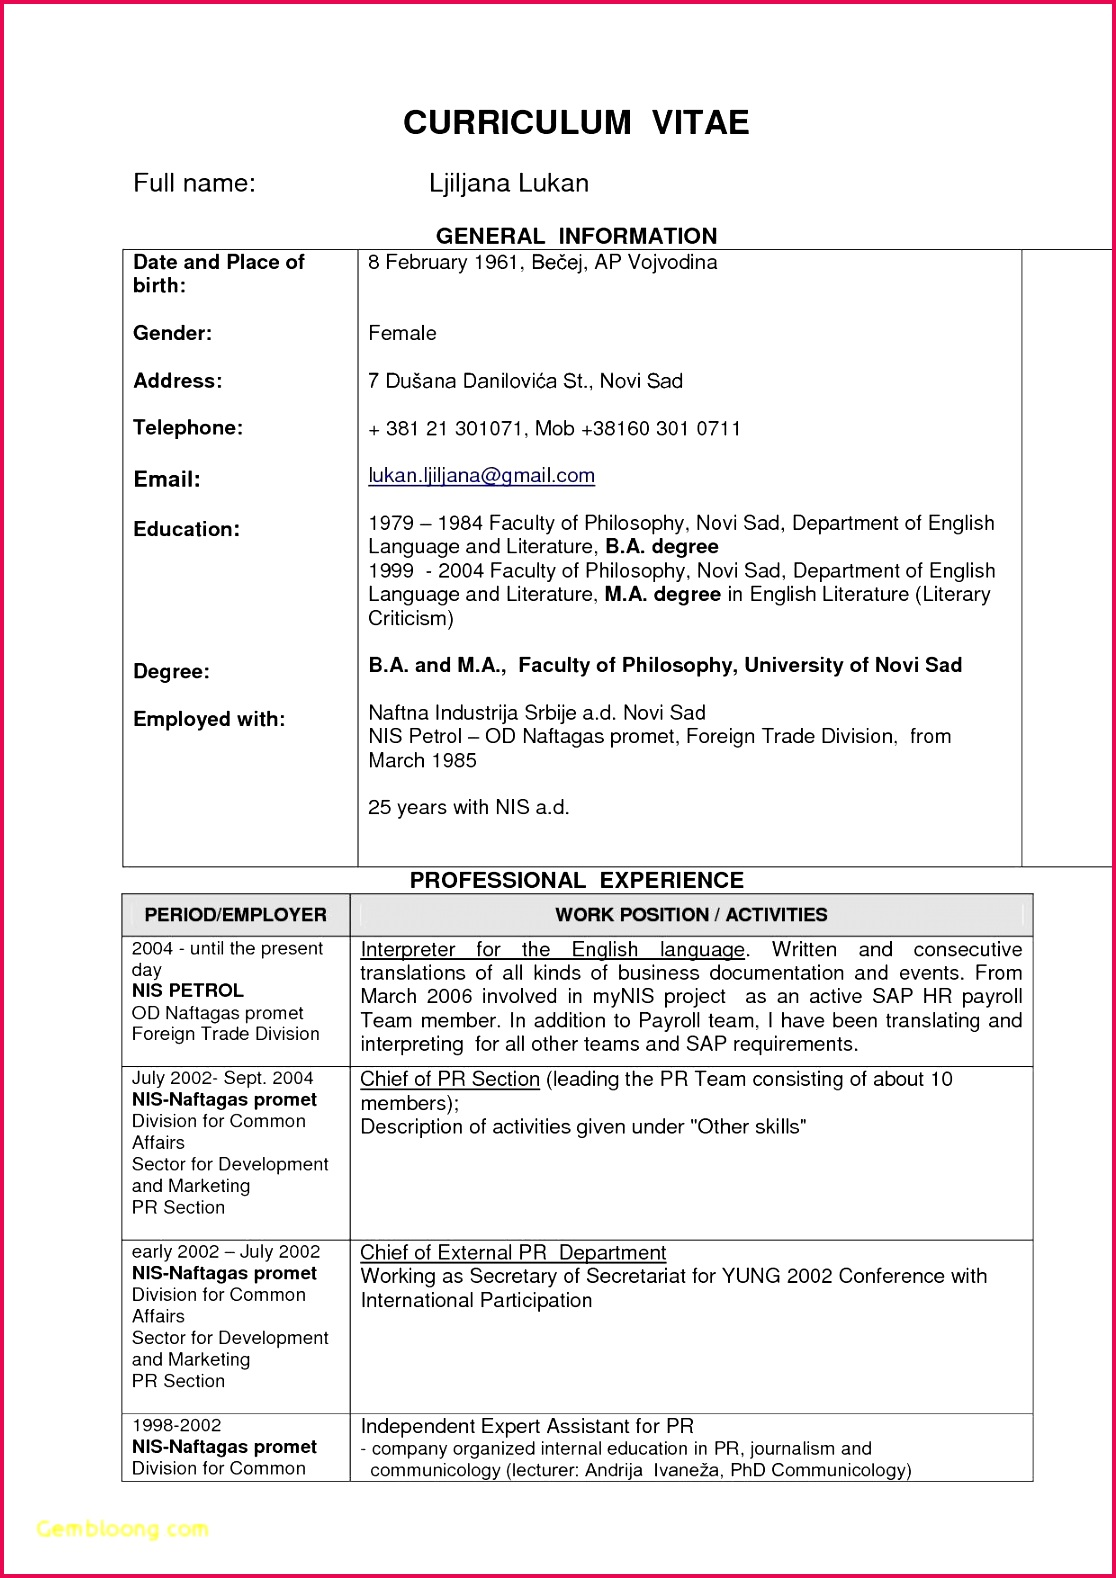 mexican marriage certificate translation template fresh certificate translation from spanish to english sample of mexican marriage certificate translation template